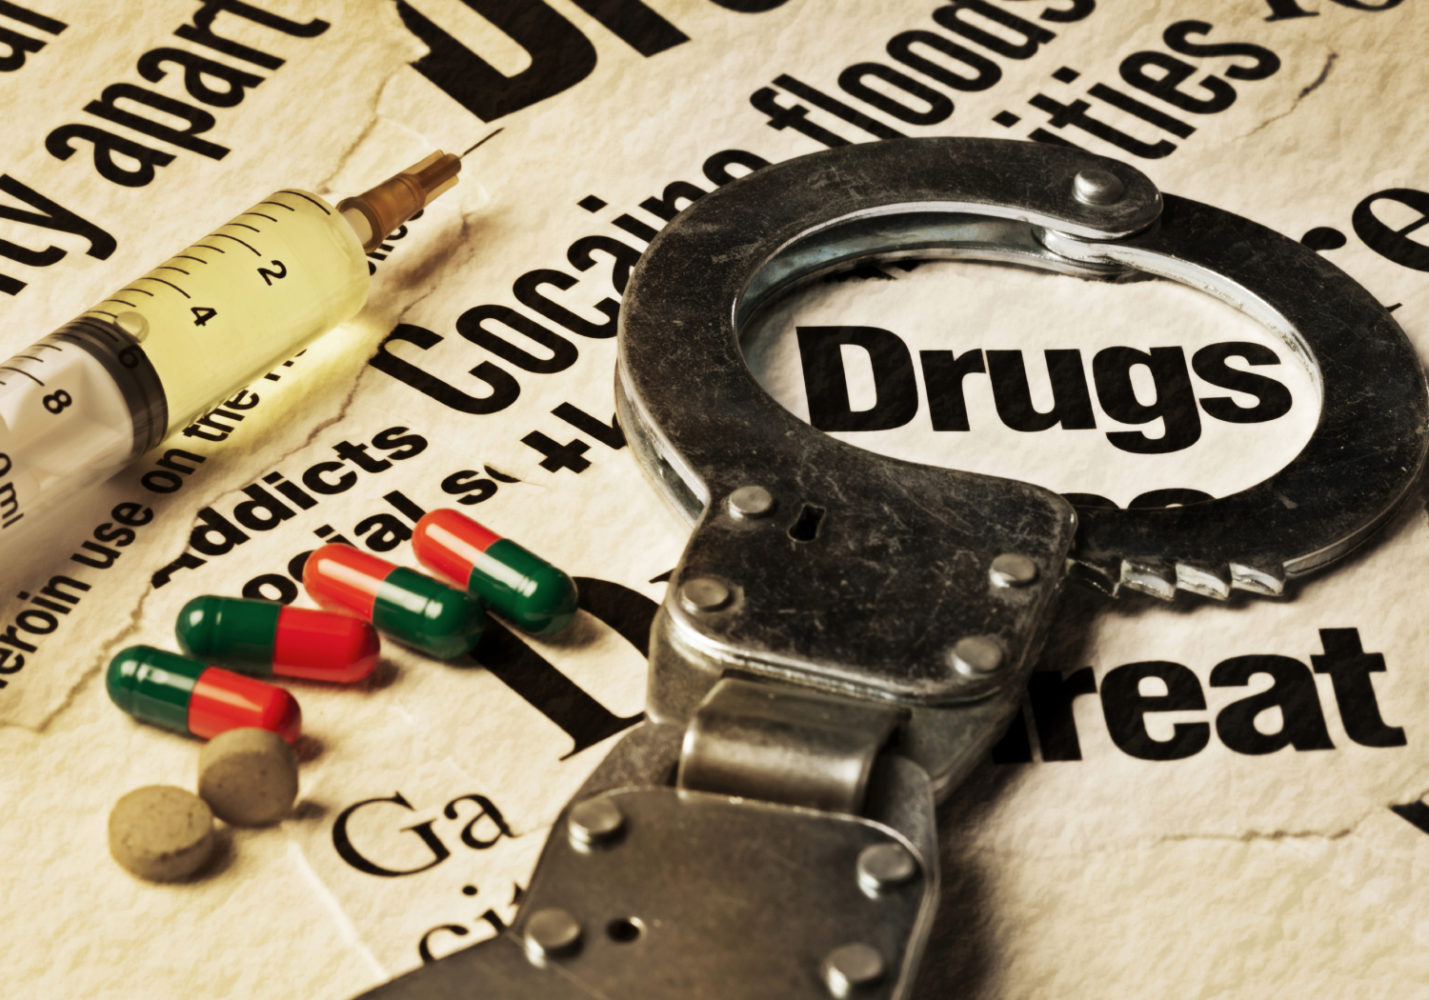 Lawson resident held on drug allegation